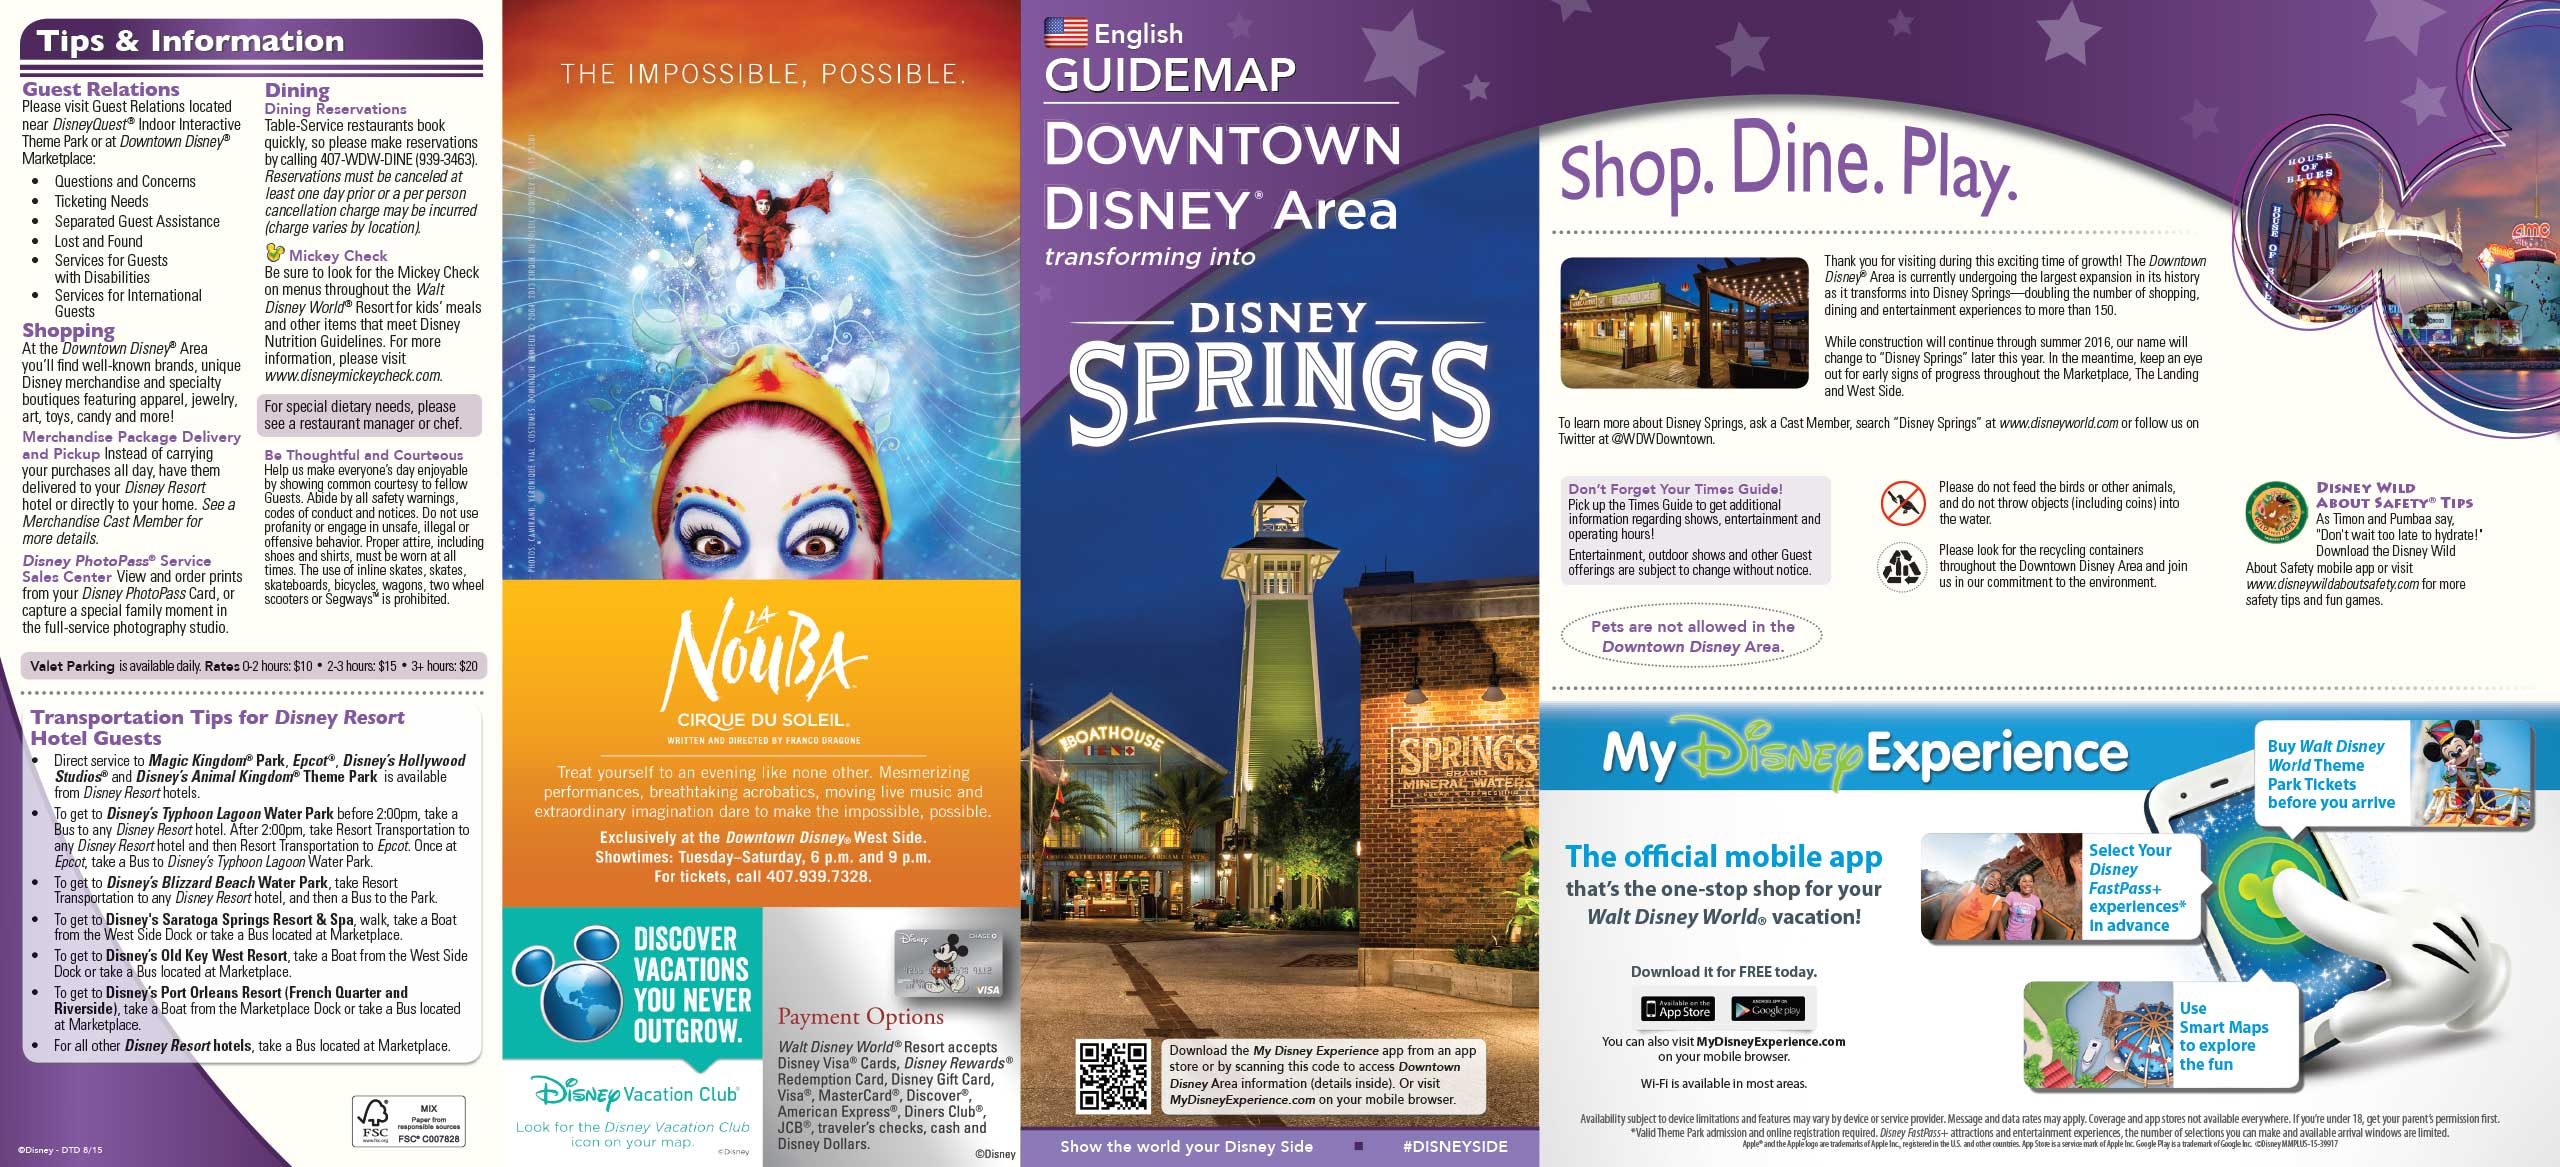 PHOTOS - New Downtown Disney guide map includes Disney Springs name on